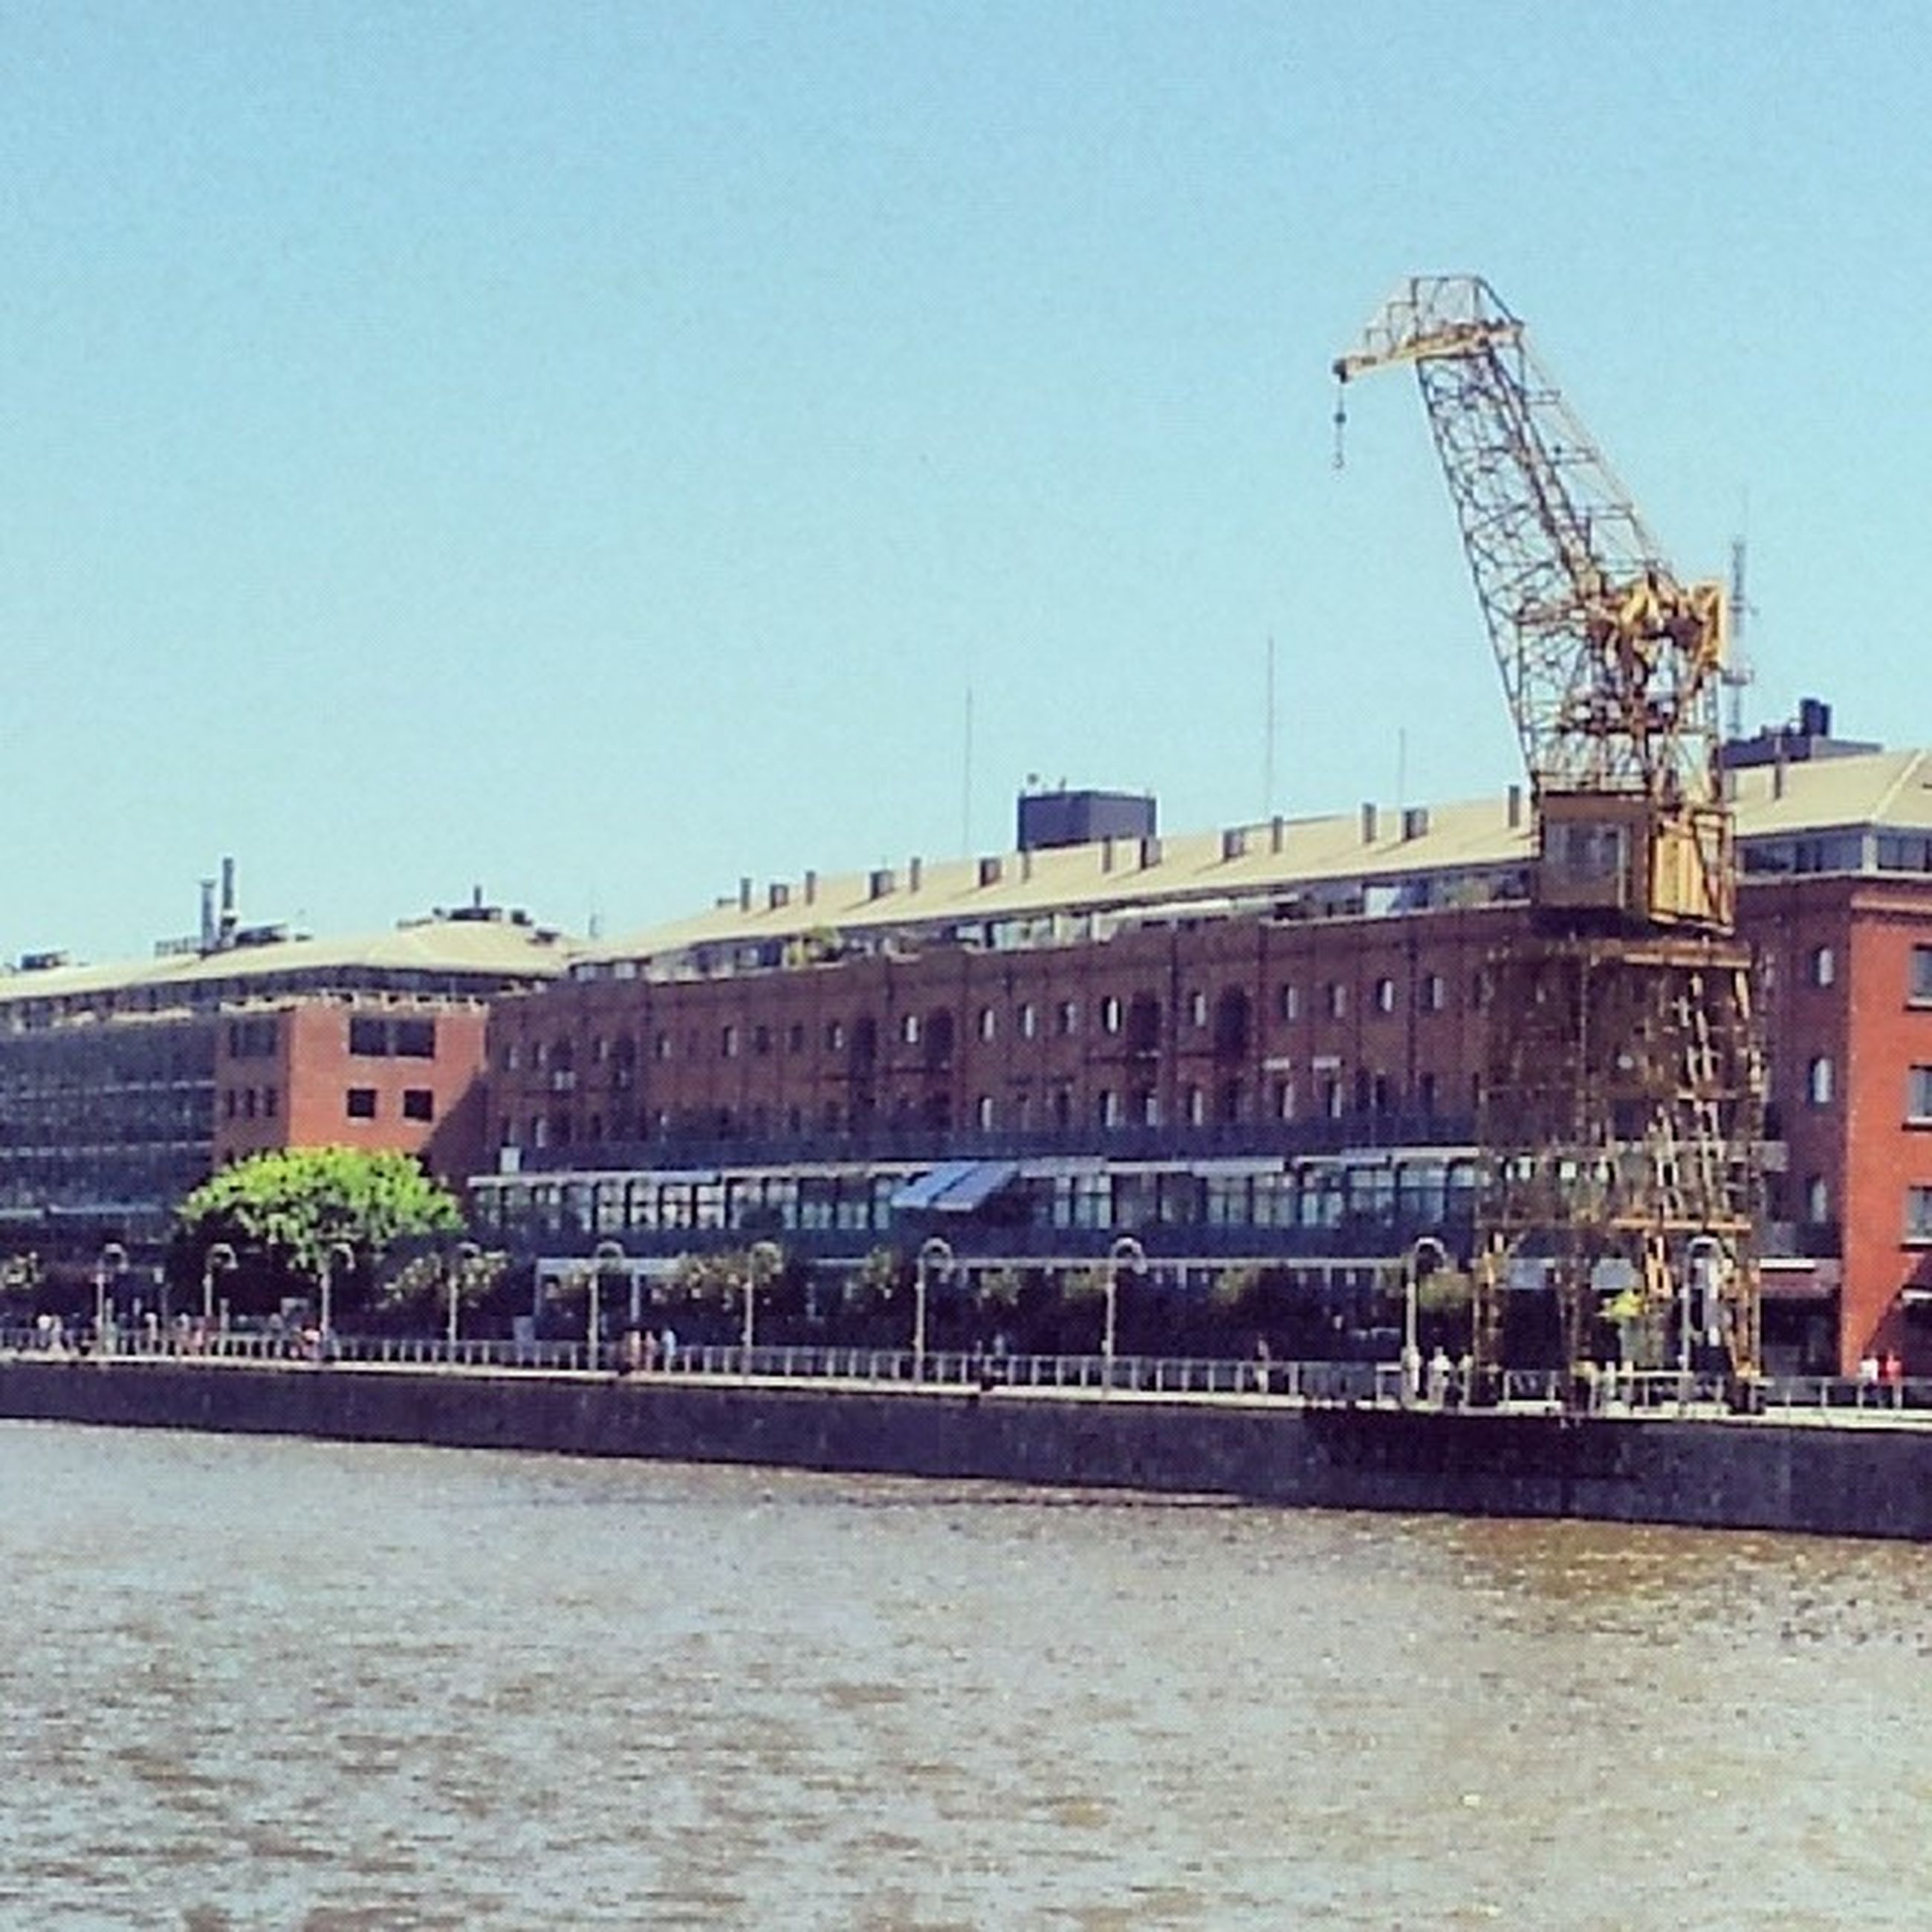 architecture, building exterior, built structure, clear sky, crane - construction machinery, waterfront, city, copy space, residential building, water, residential structure, development, crane, construction site, river, building, connection, outdoors, day, residential district